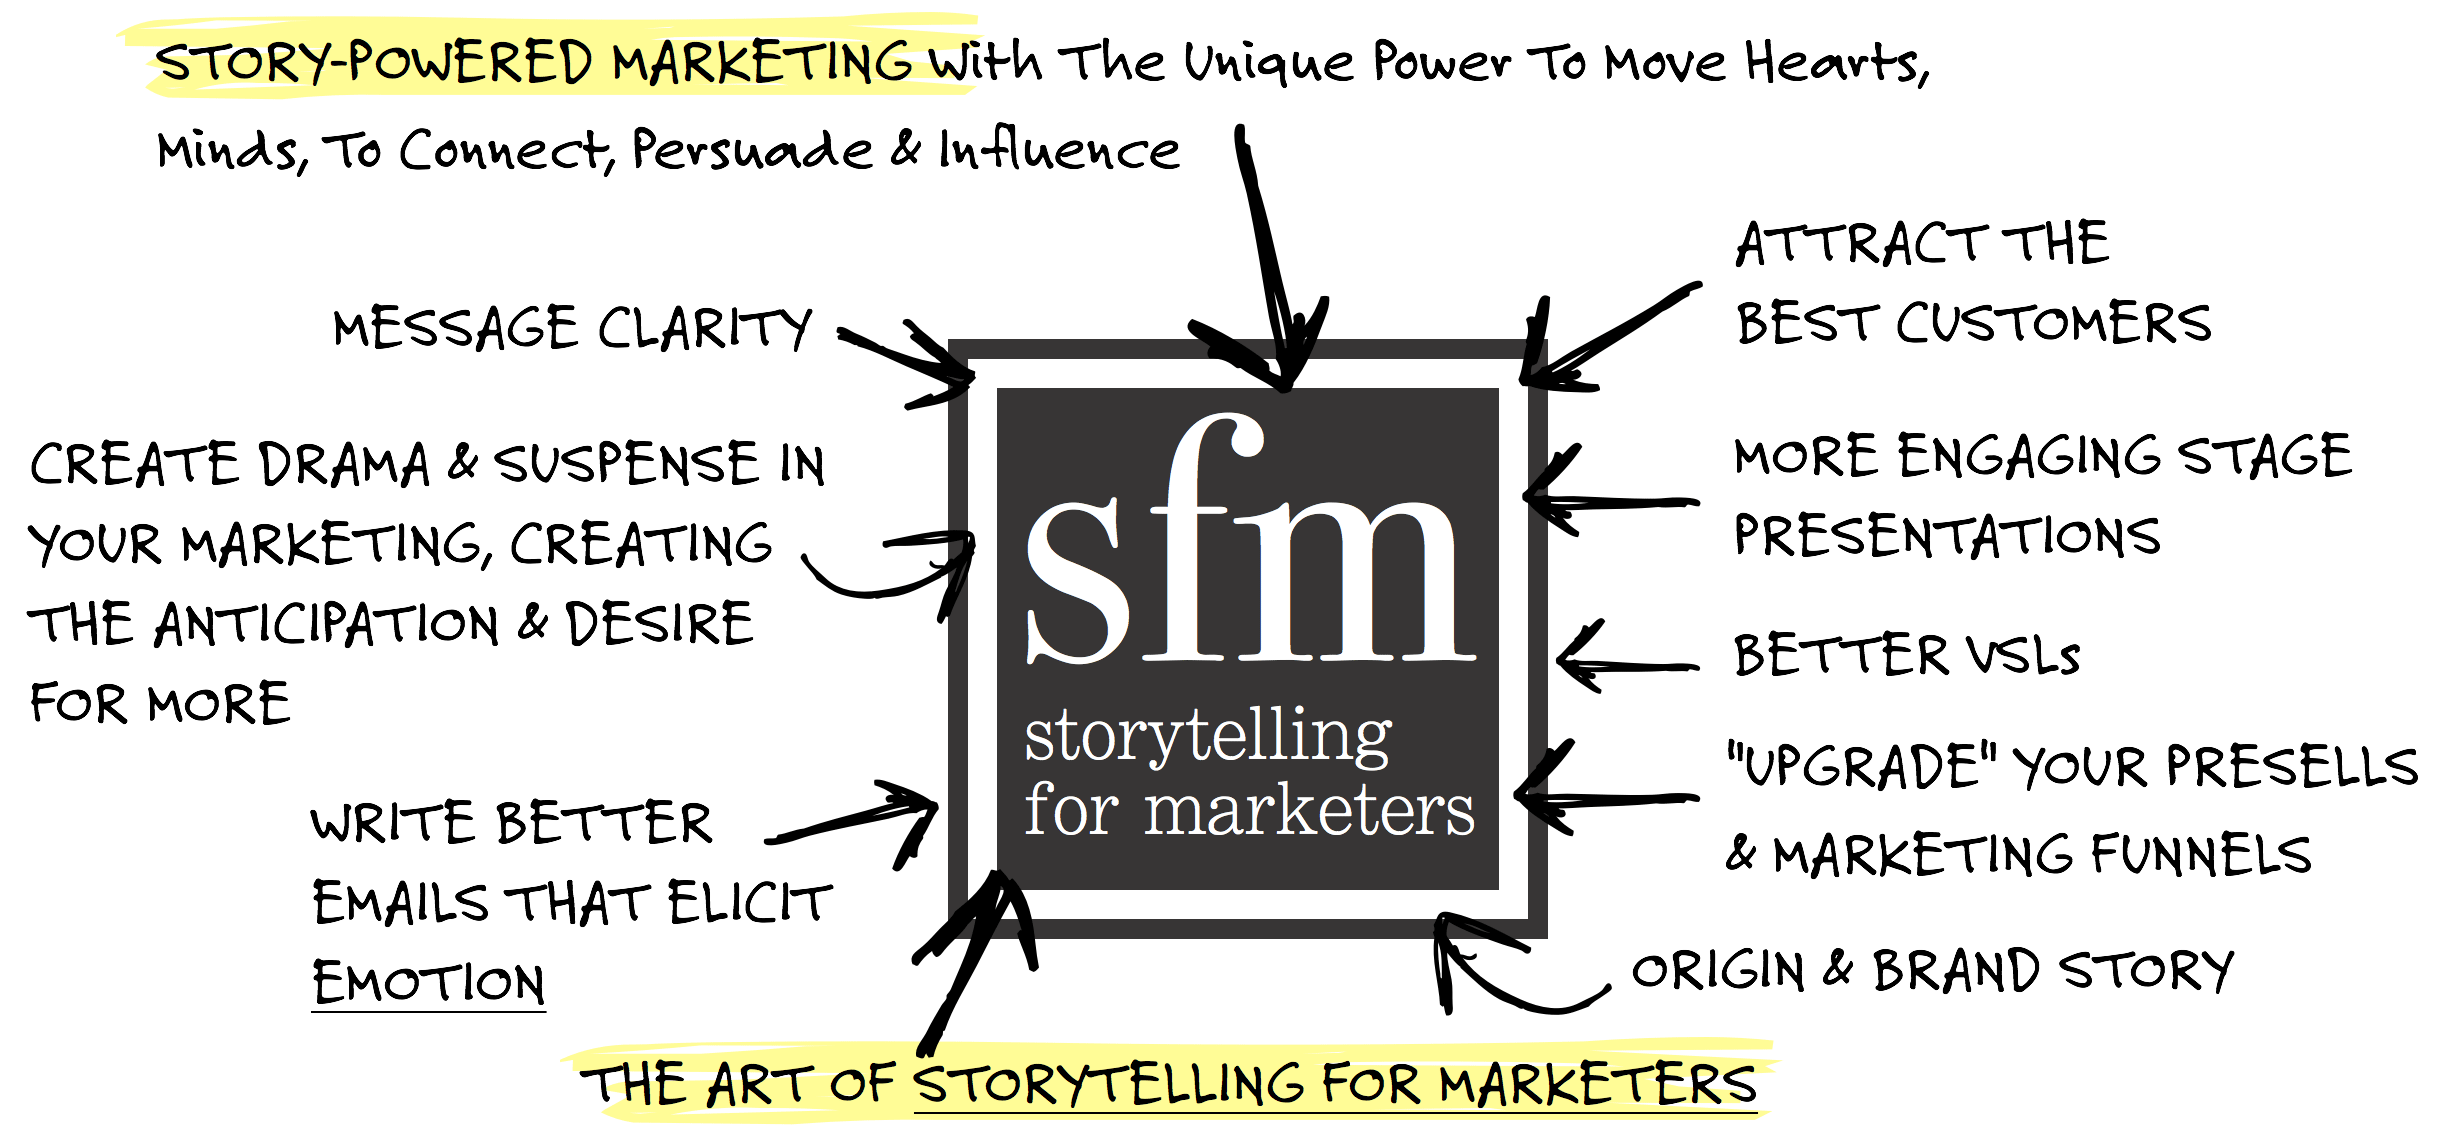 #6 - Story Powered Marketing - Michael Hague and Andre Chaperon